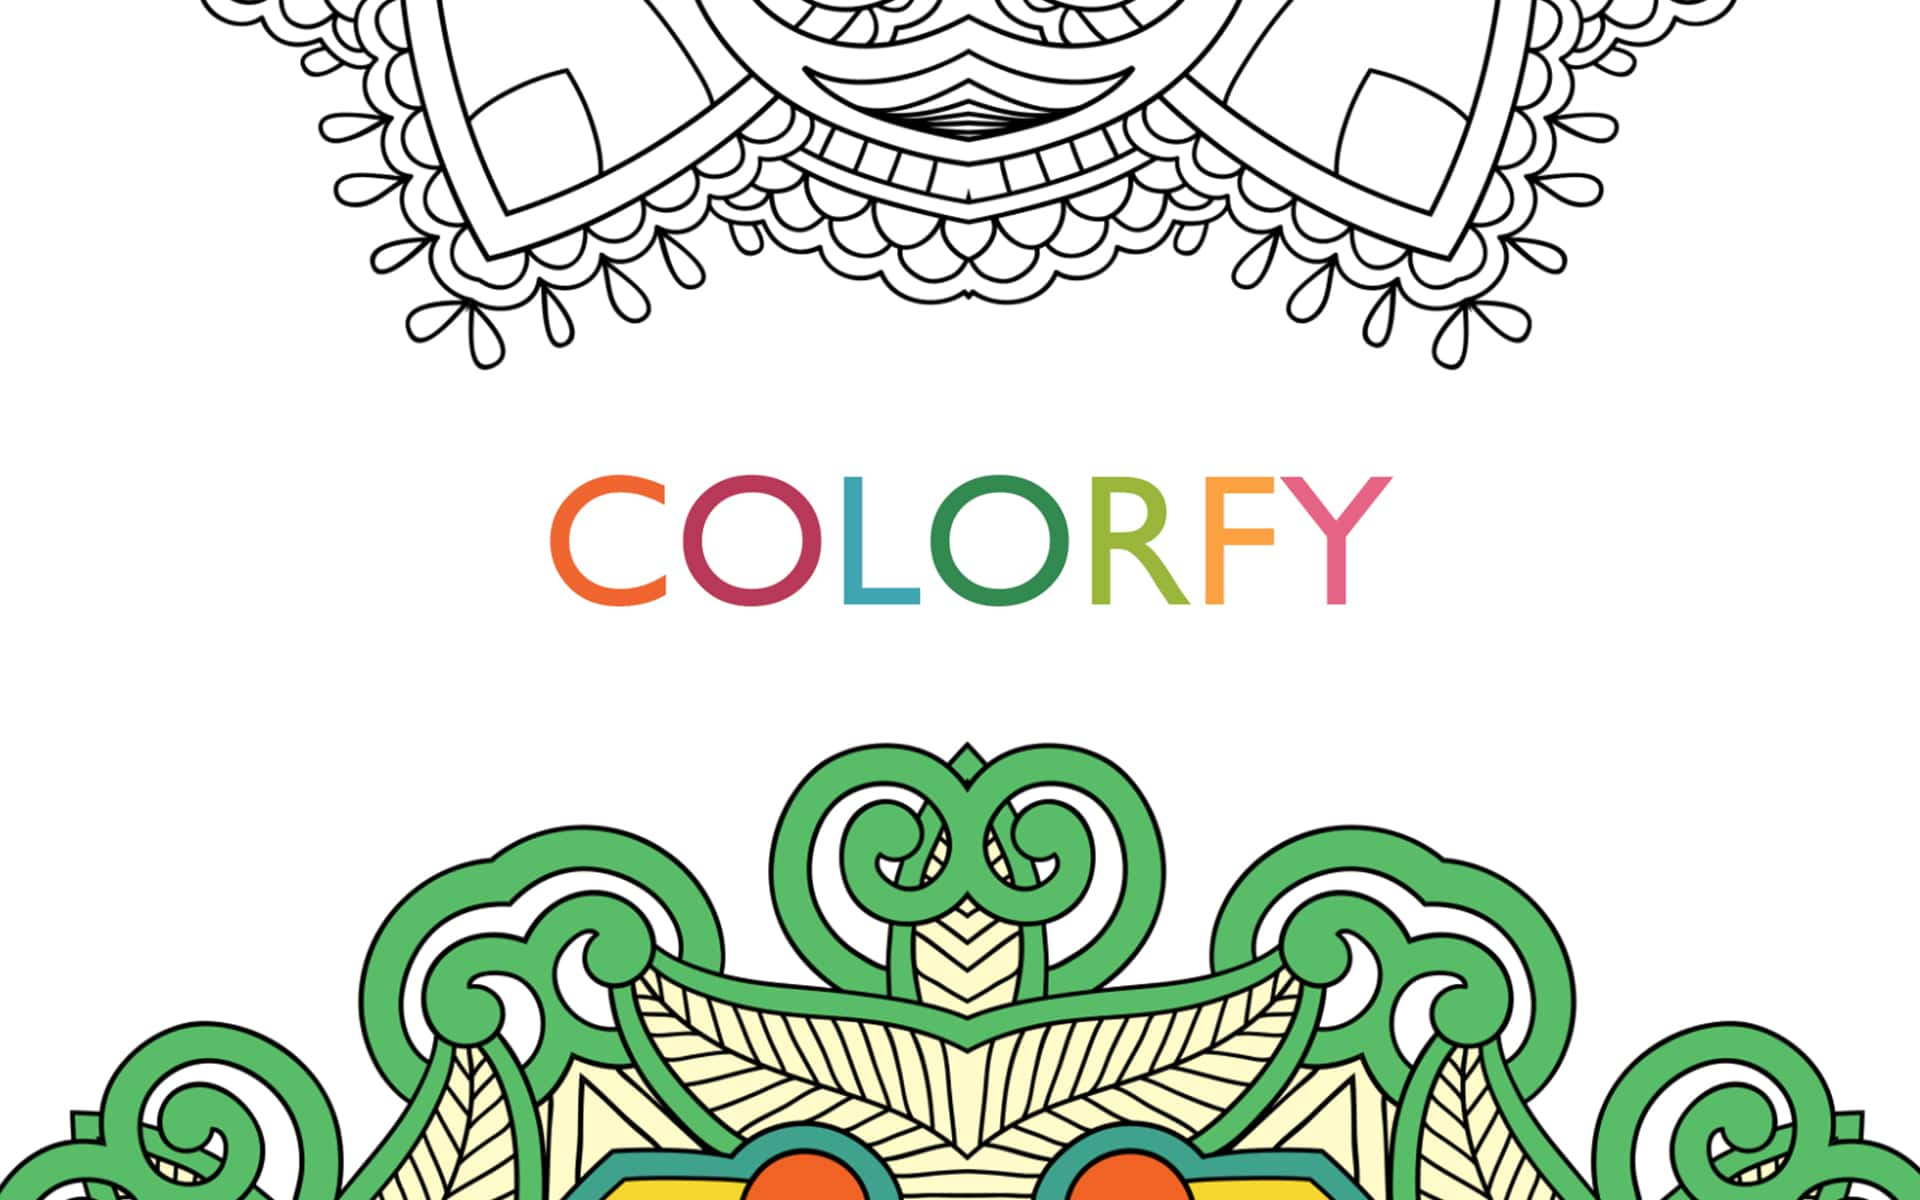 Colorfy For Windows 10 PC 1